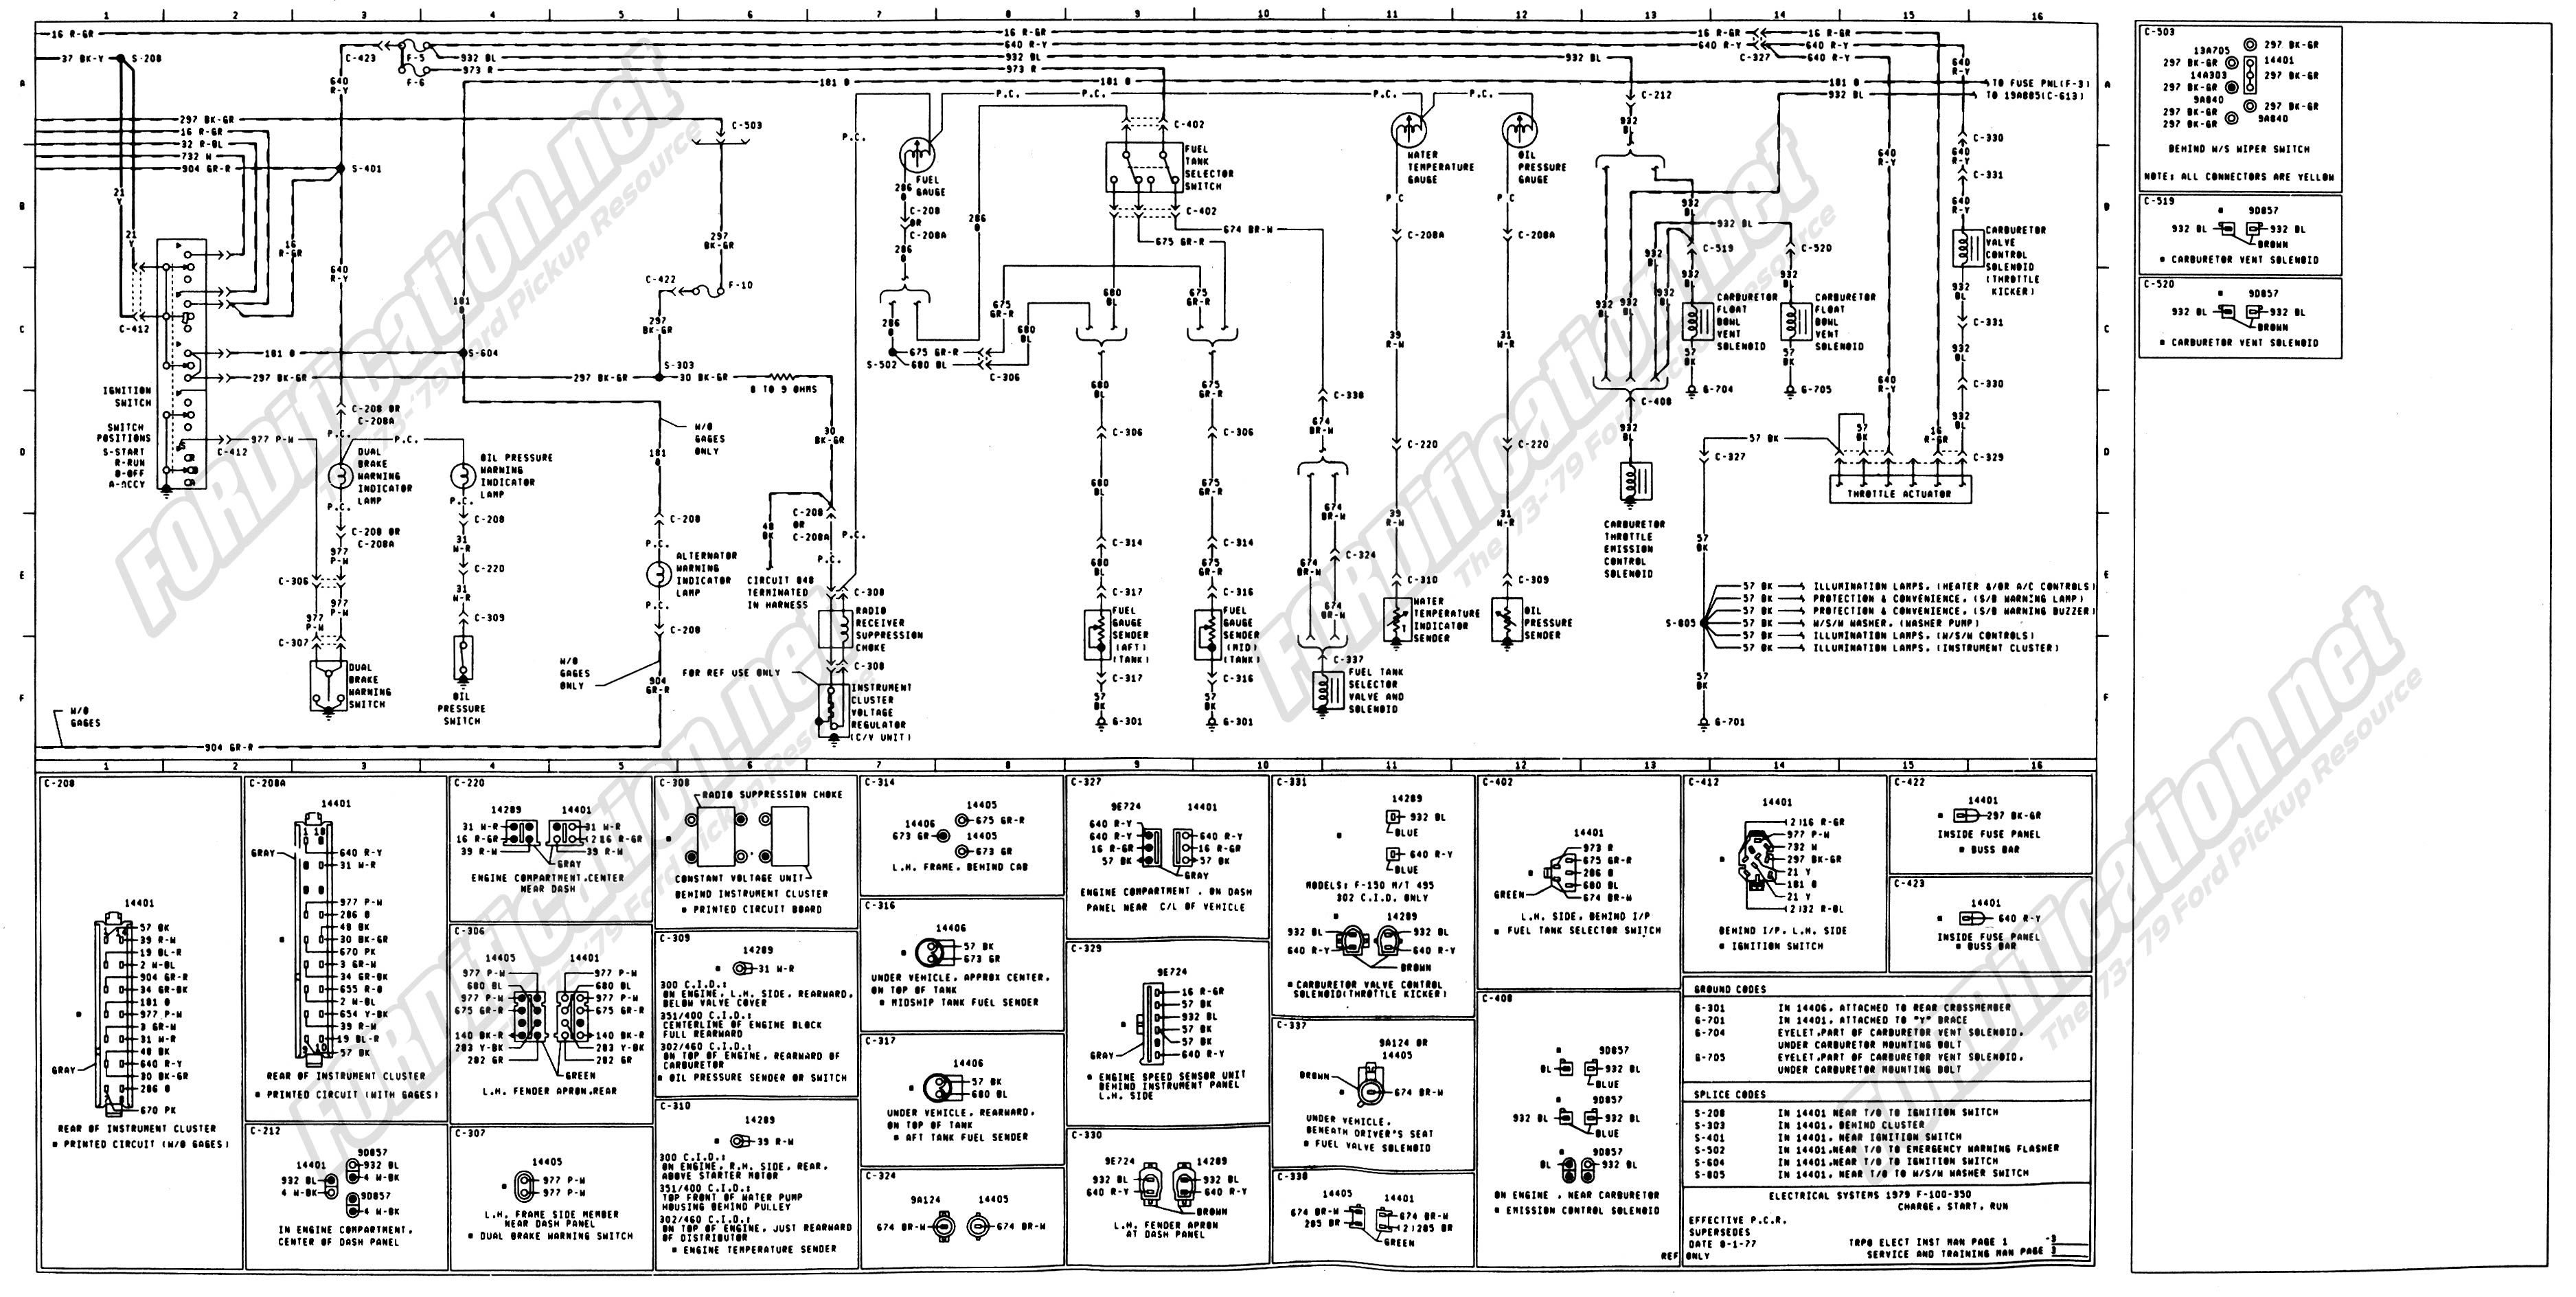 6 0 Powerstroke Injector Wiring Harness - Wiring Diagram Detailed - 6.0 Powerstroke Wiring Harness Diagram